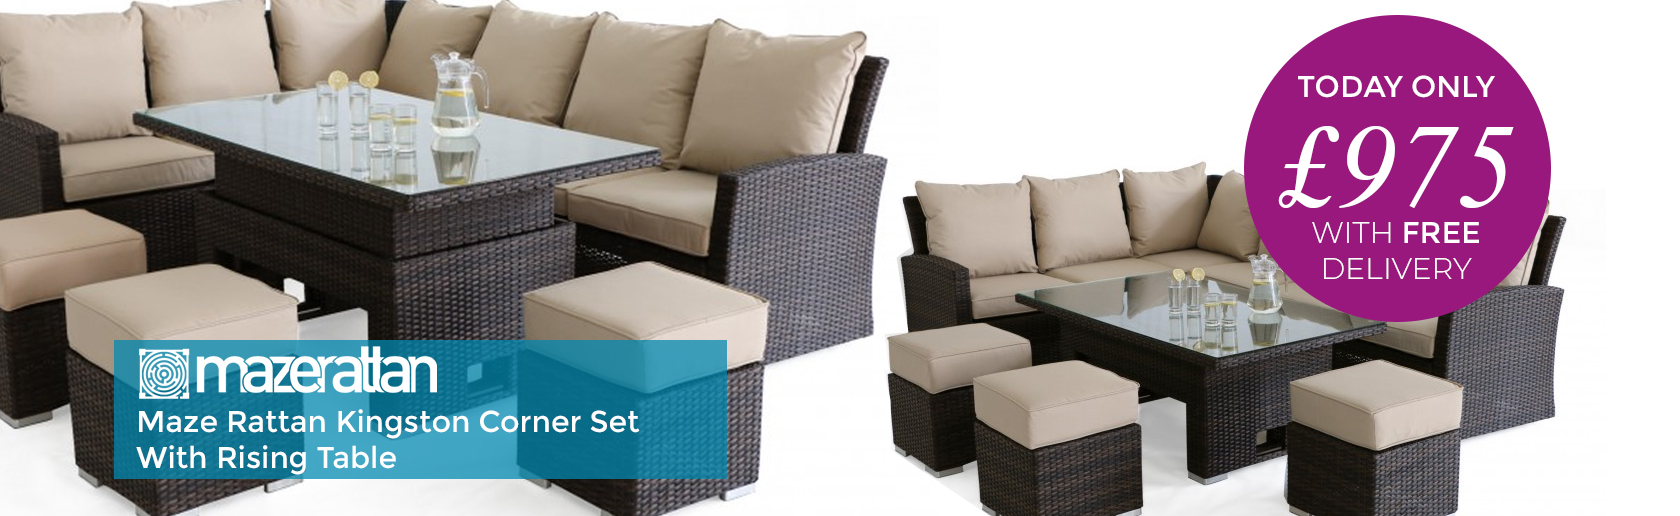 Maze Rattan Kingston Brown Corner Set With Rising Table